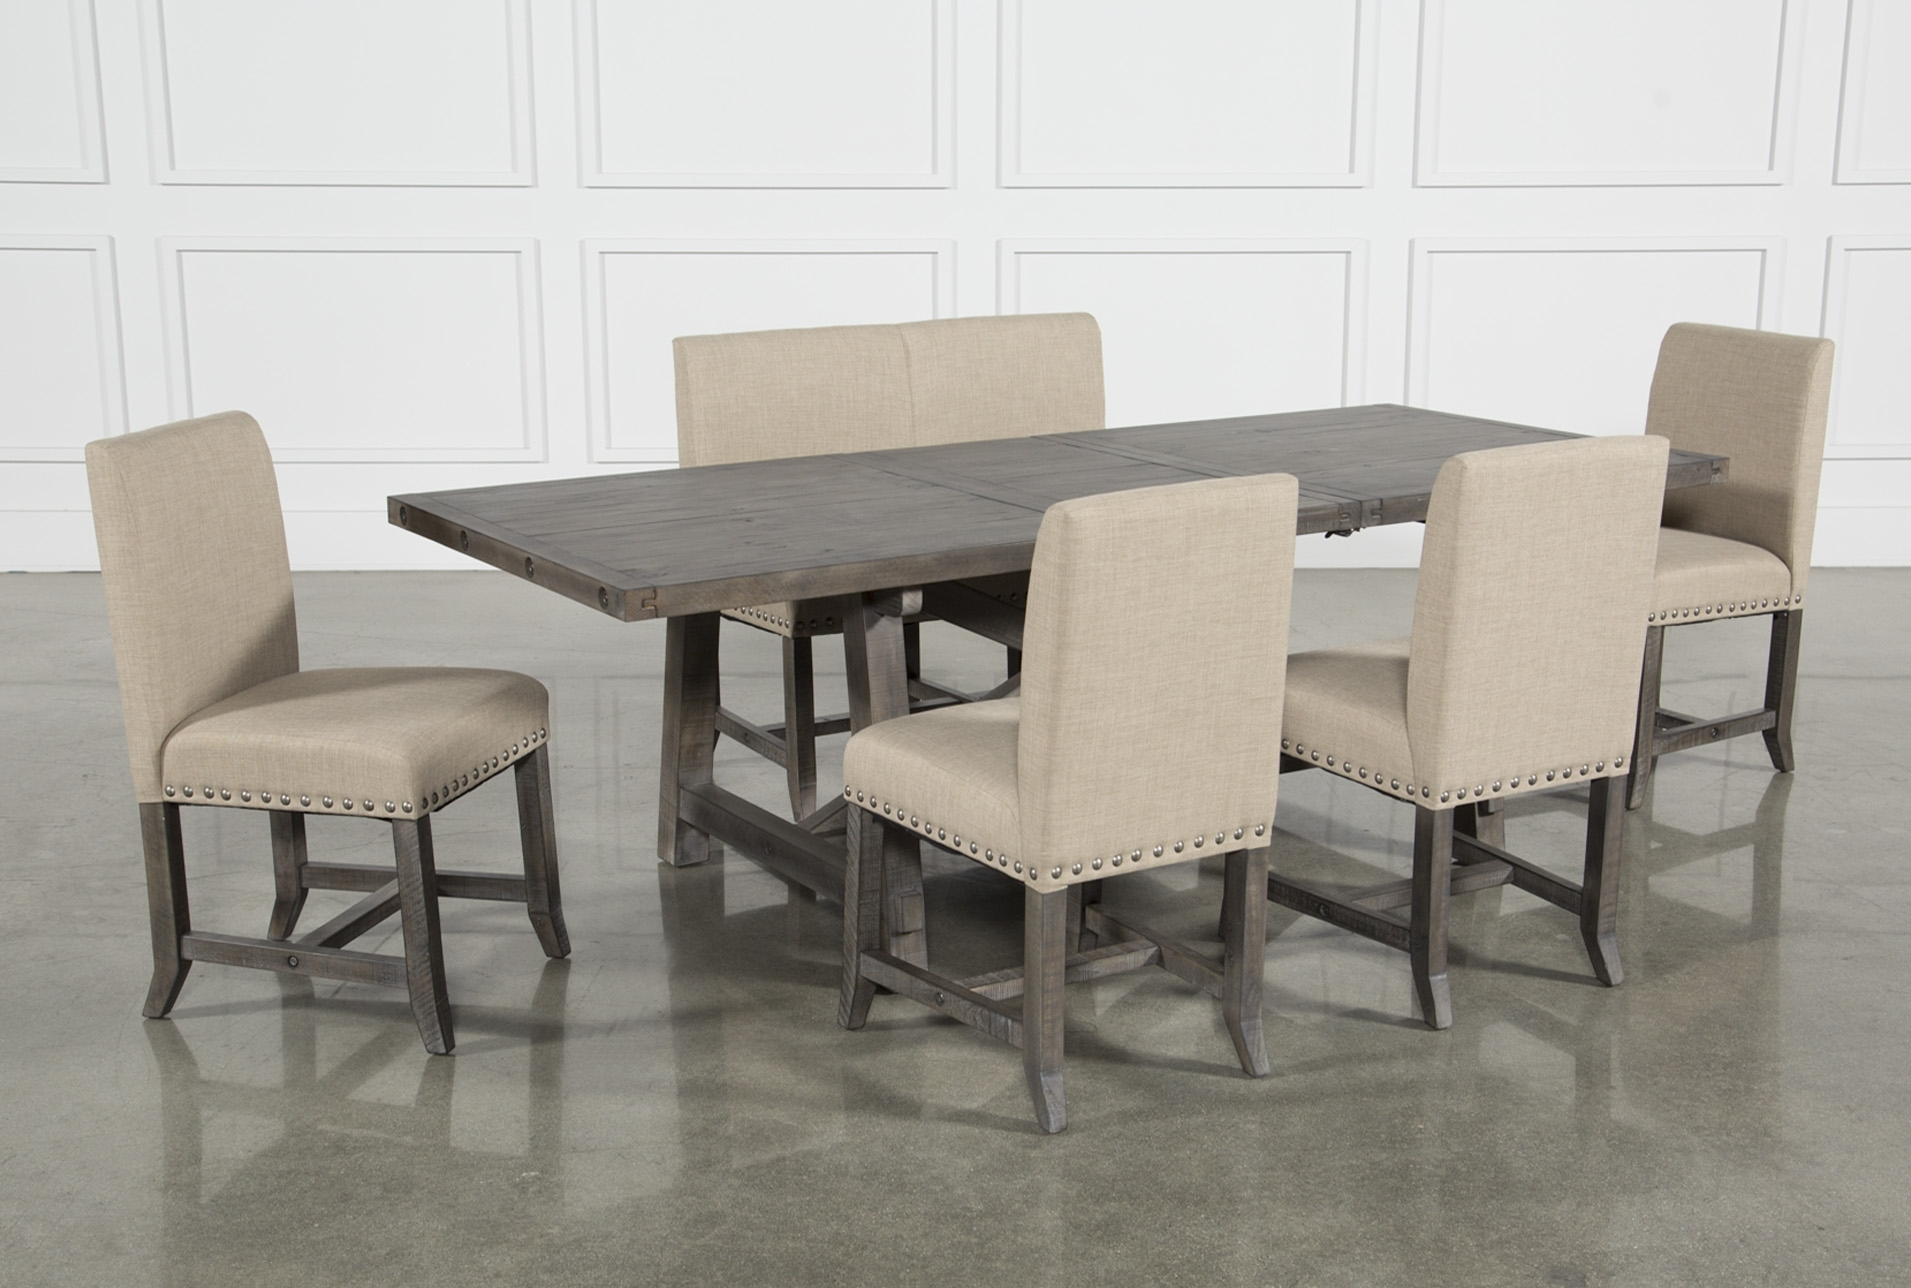 Jaxon Grey 6 Piece Rectangle Extension Dining Set W/bench & Uph With 2017 Jaxon 6 Piece Rectangle Dining Sets With Bench & Uph Chairs (Image 15 of 20)